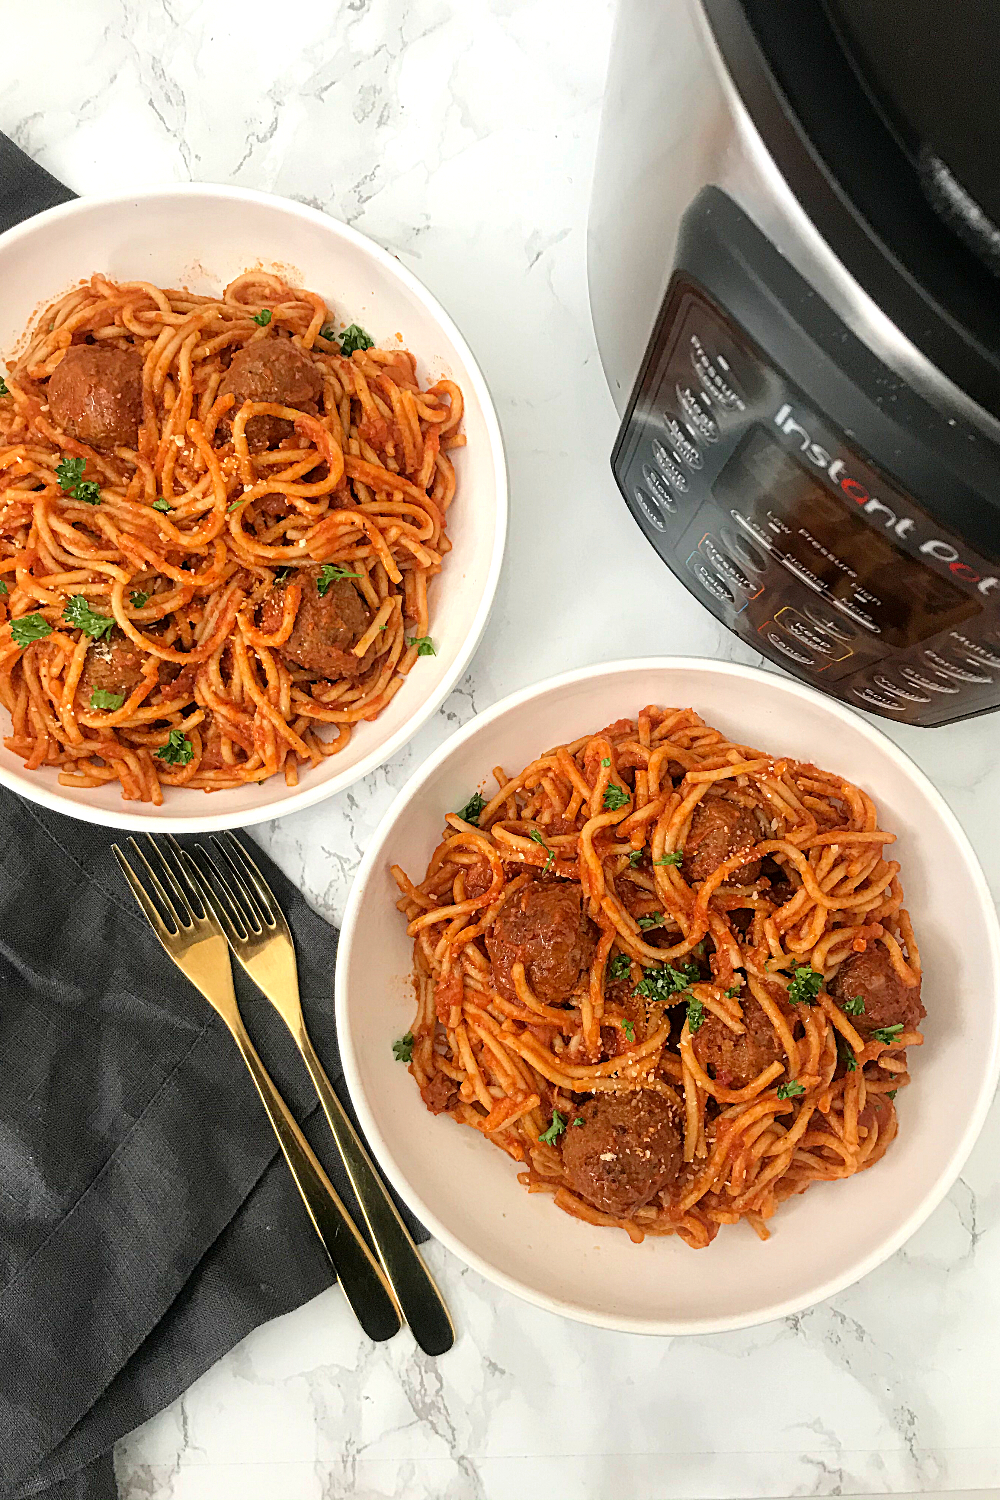 Instant Pot Spaghetti and meatballs served in two white pasta bowls, with 2 golden forks on the left side and an instant pot on the right